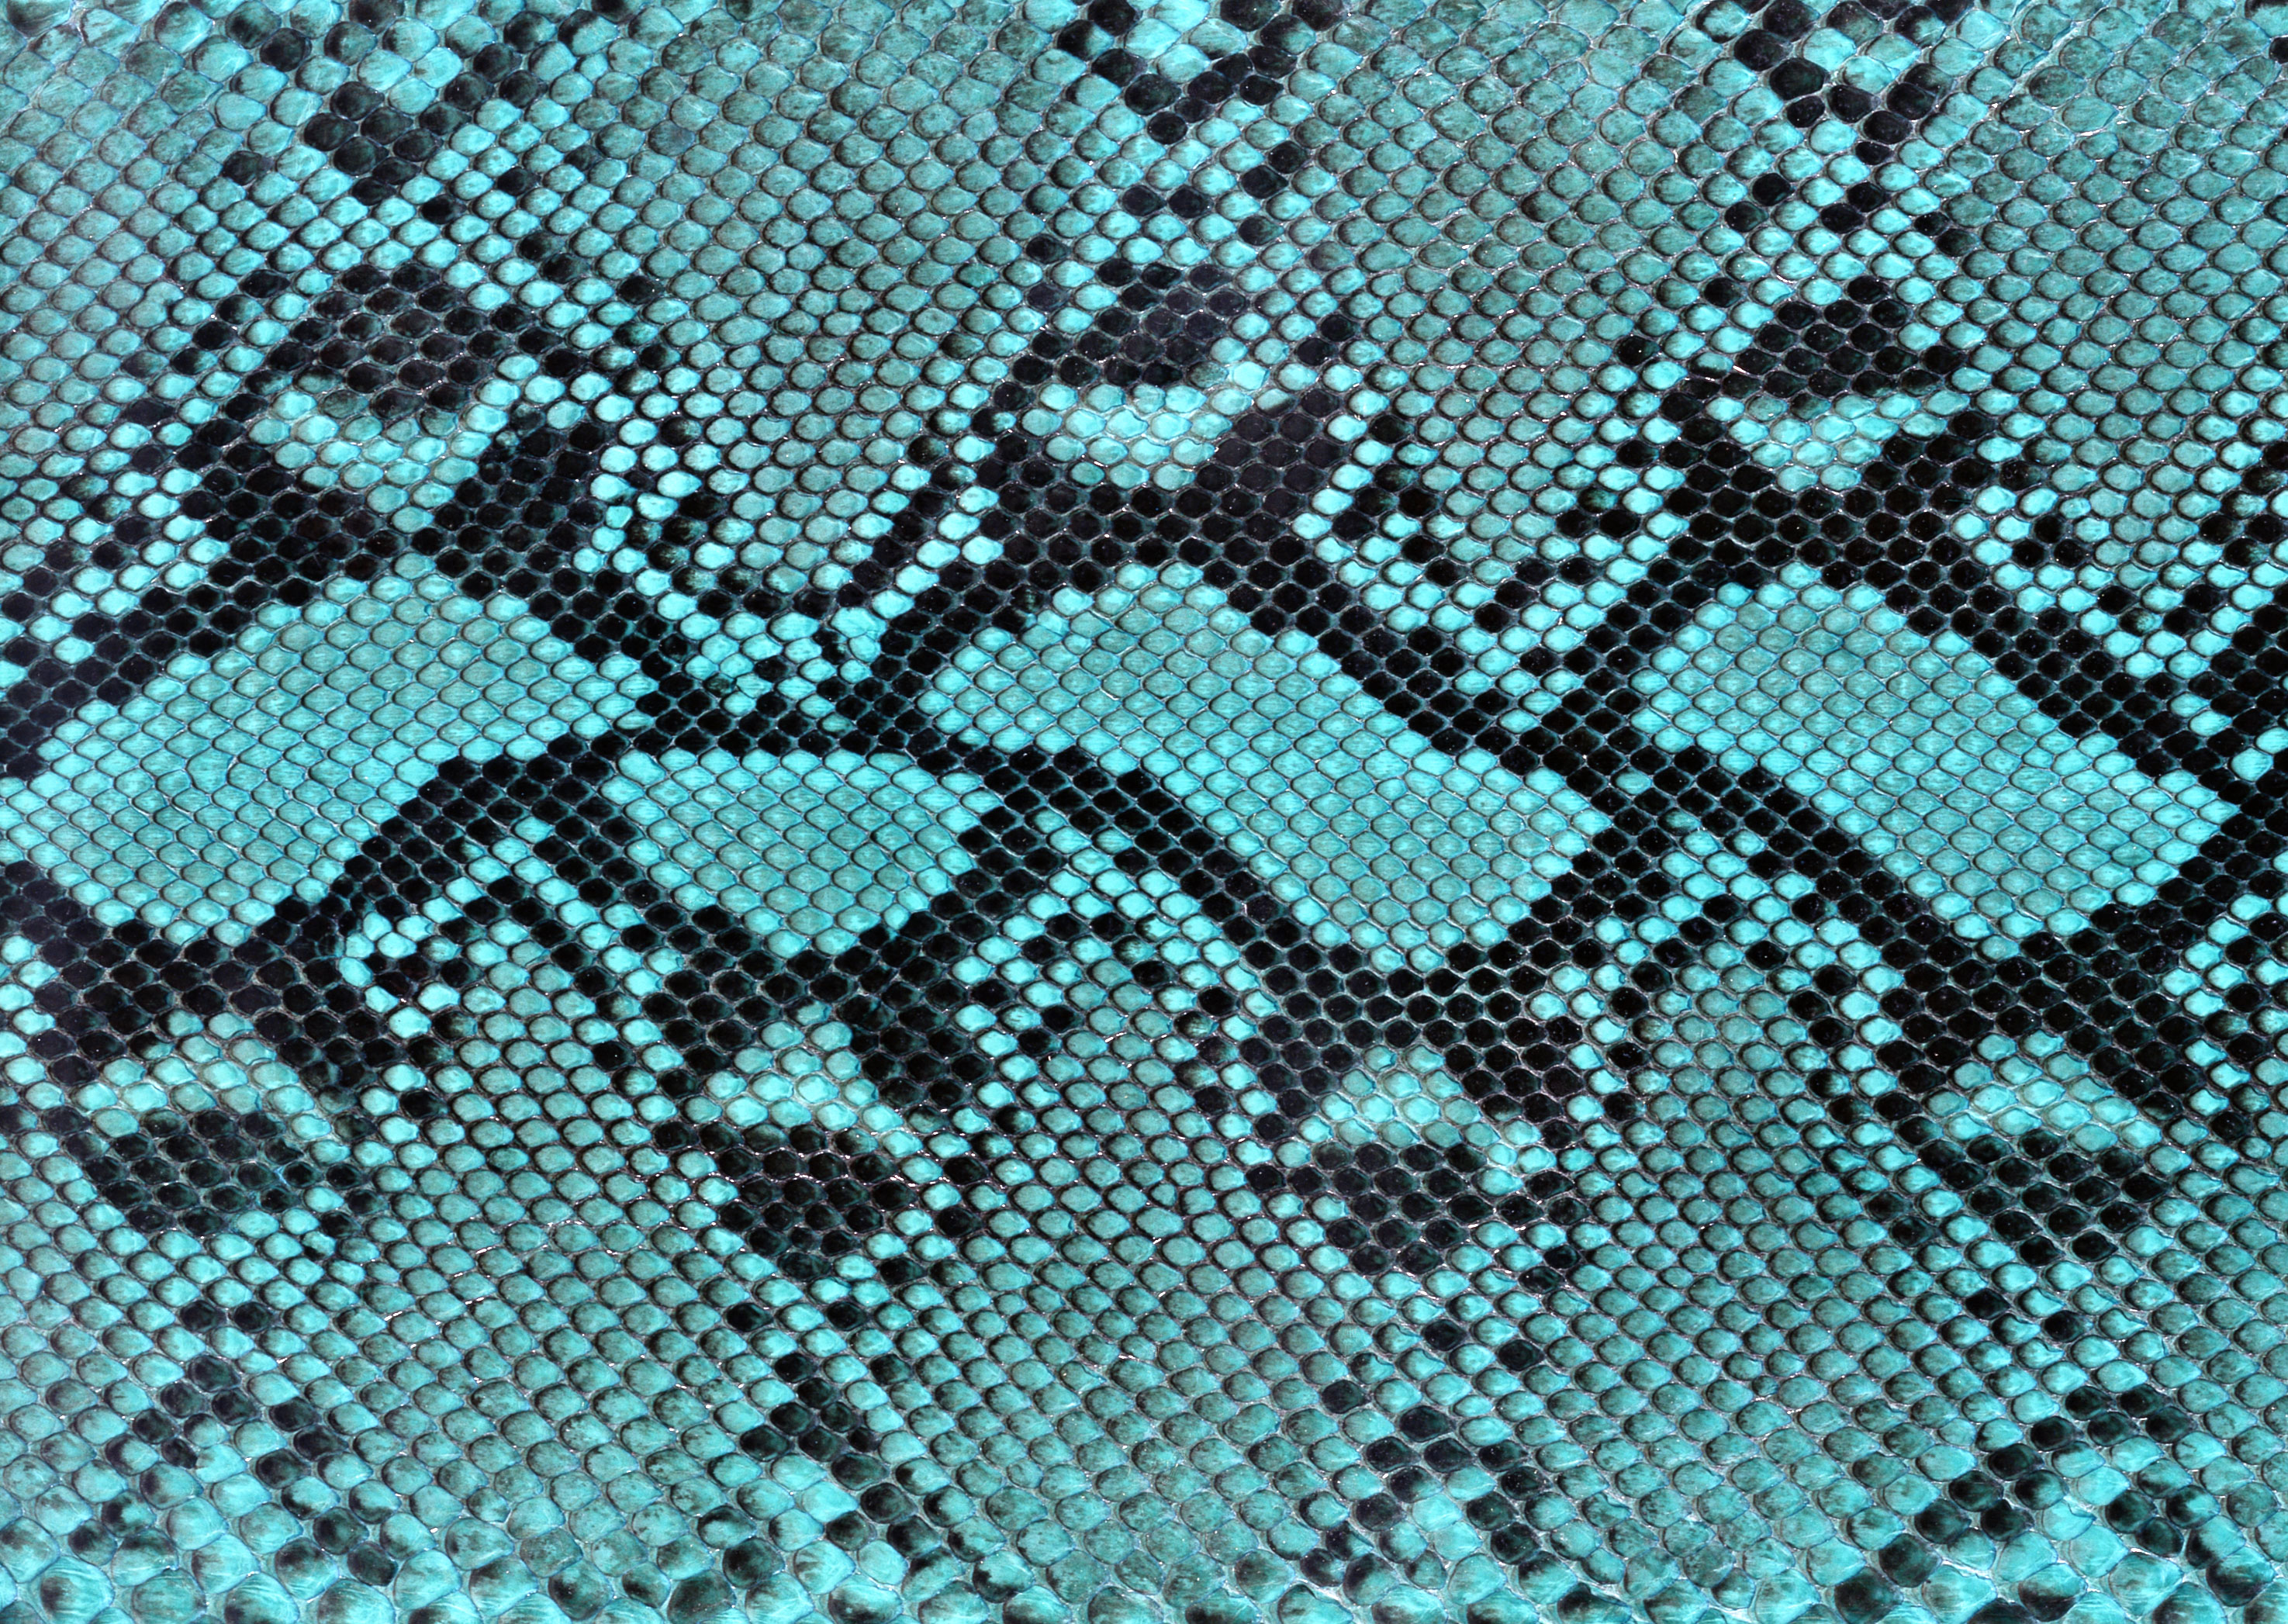 Snake leather texture background image